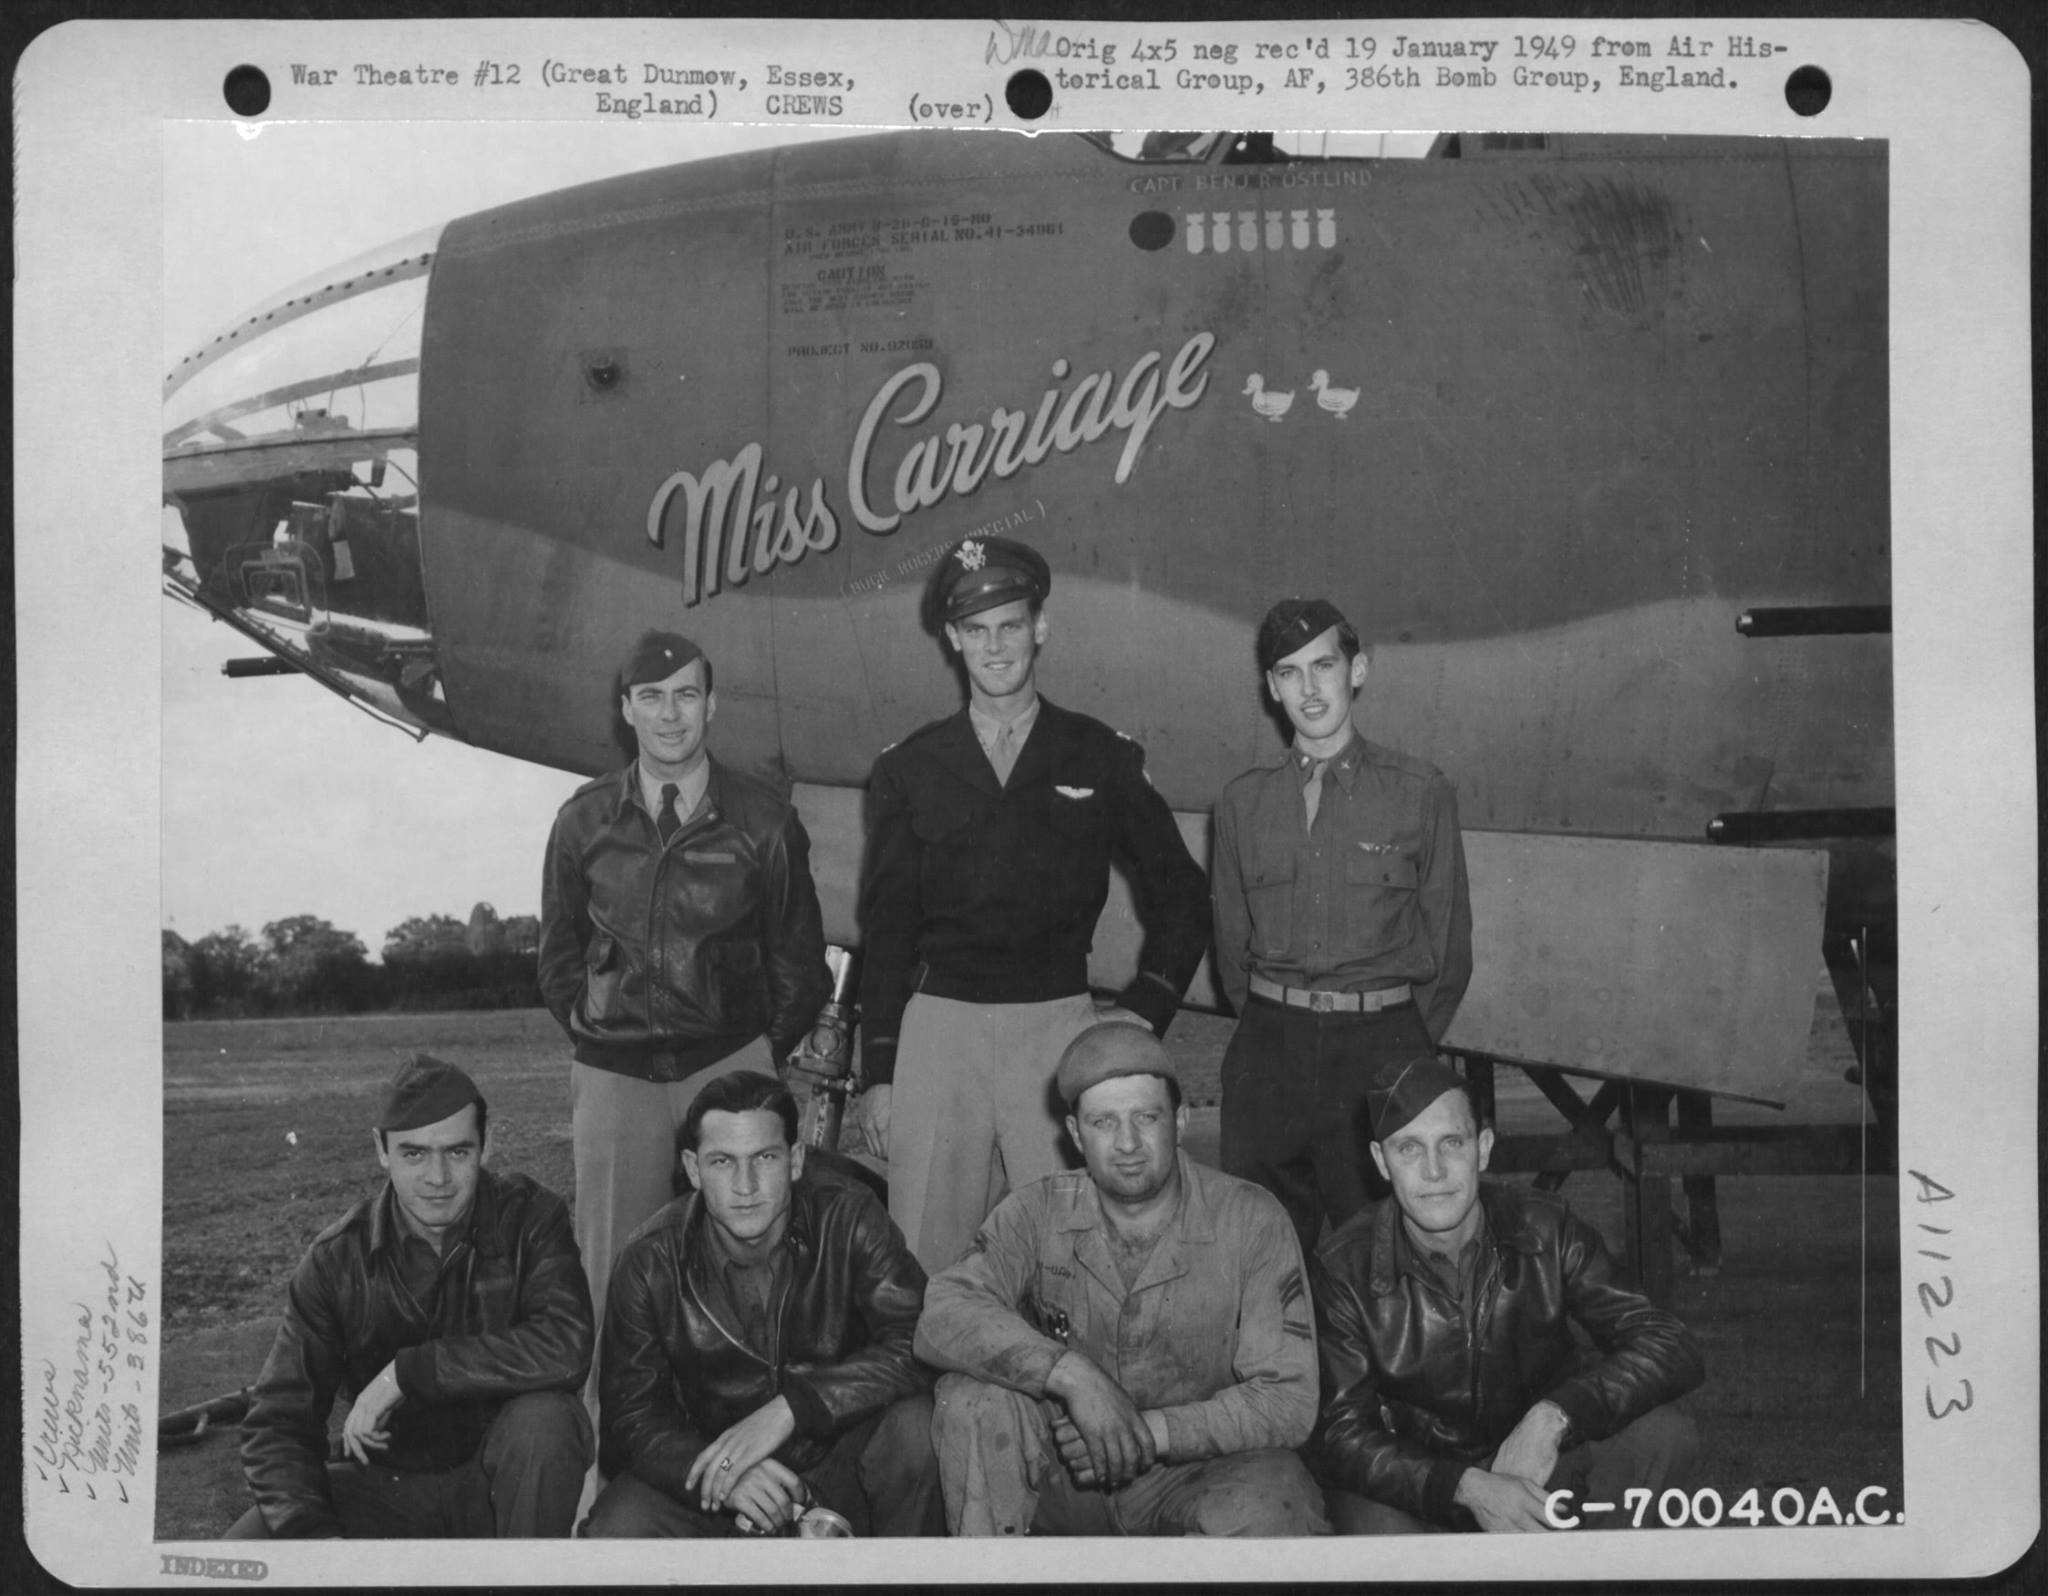 USAAF 41 34061 B 26C Marauder 386BG552BS RGM Miss Carriage with crew Great Dunmow Essex Engalnd 1 Sep 1943 01